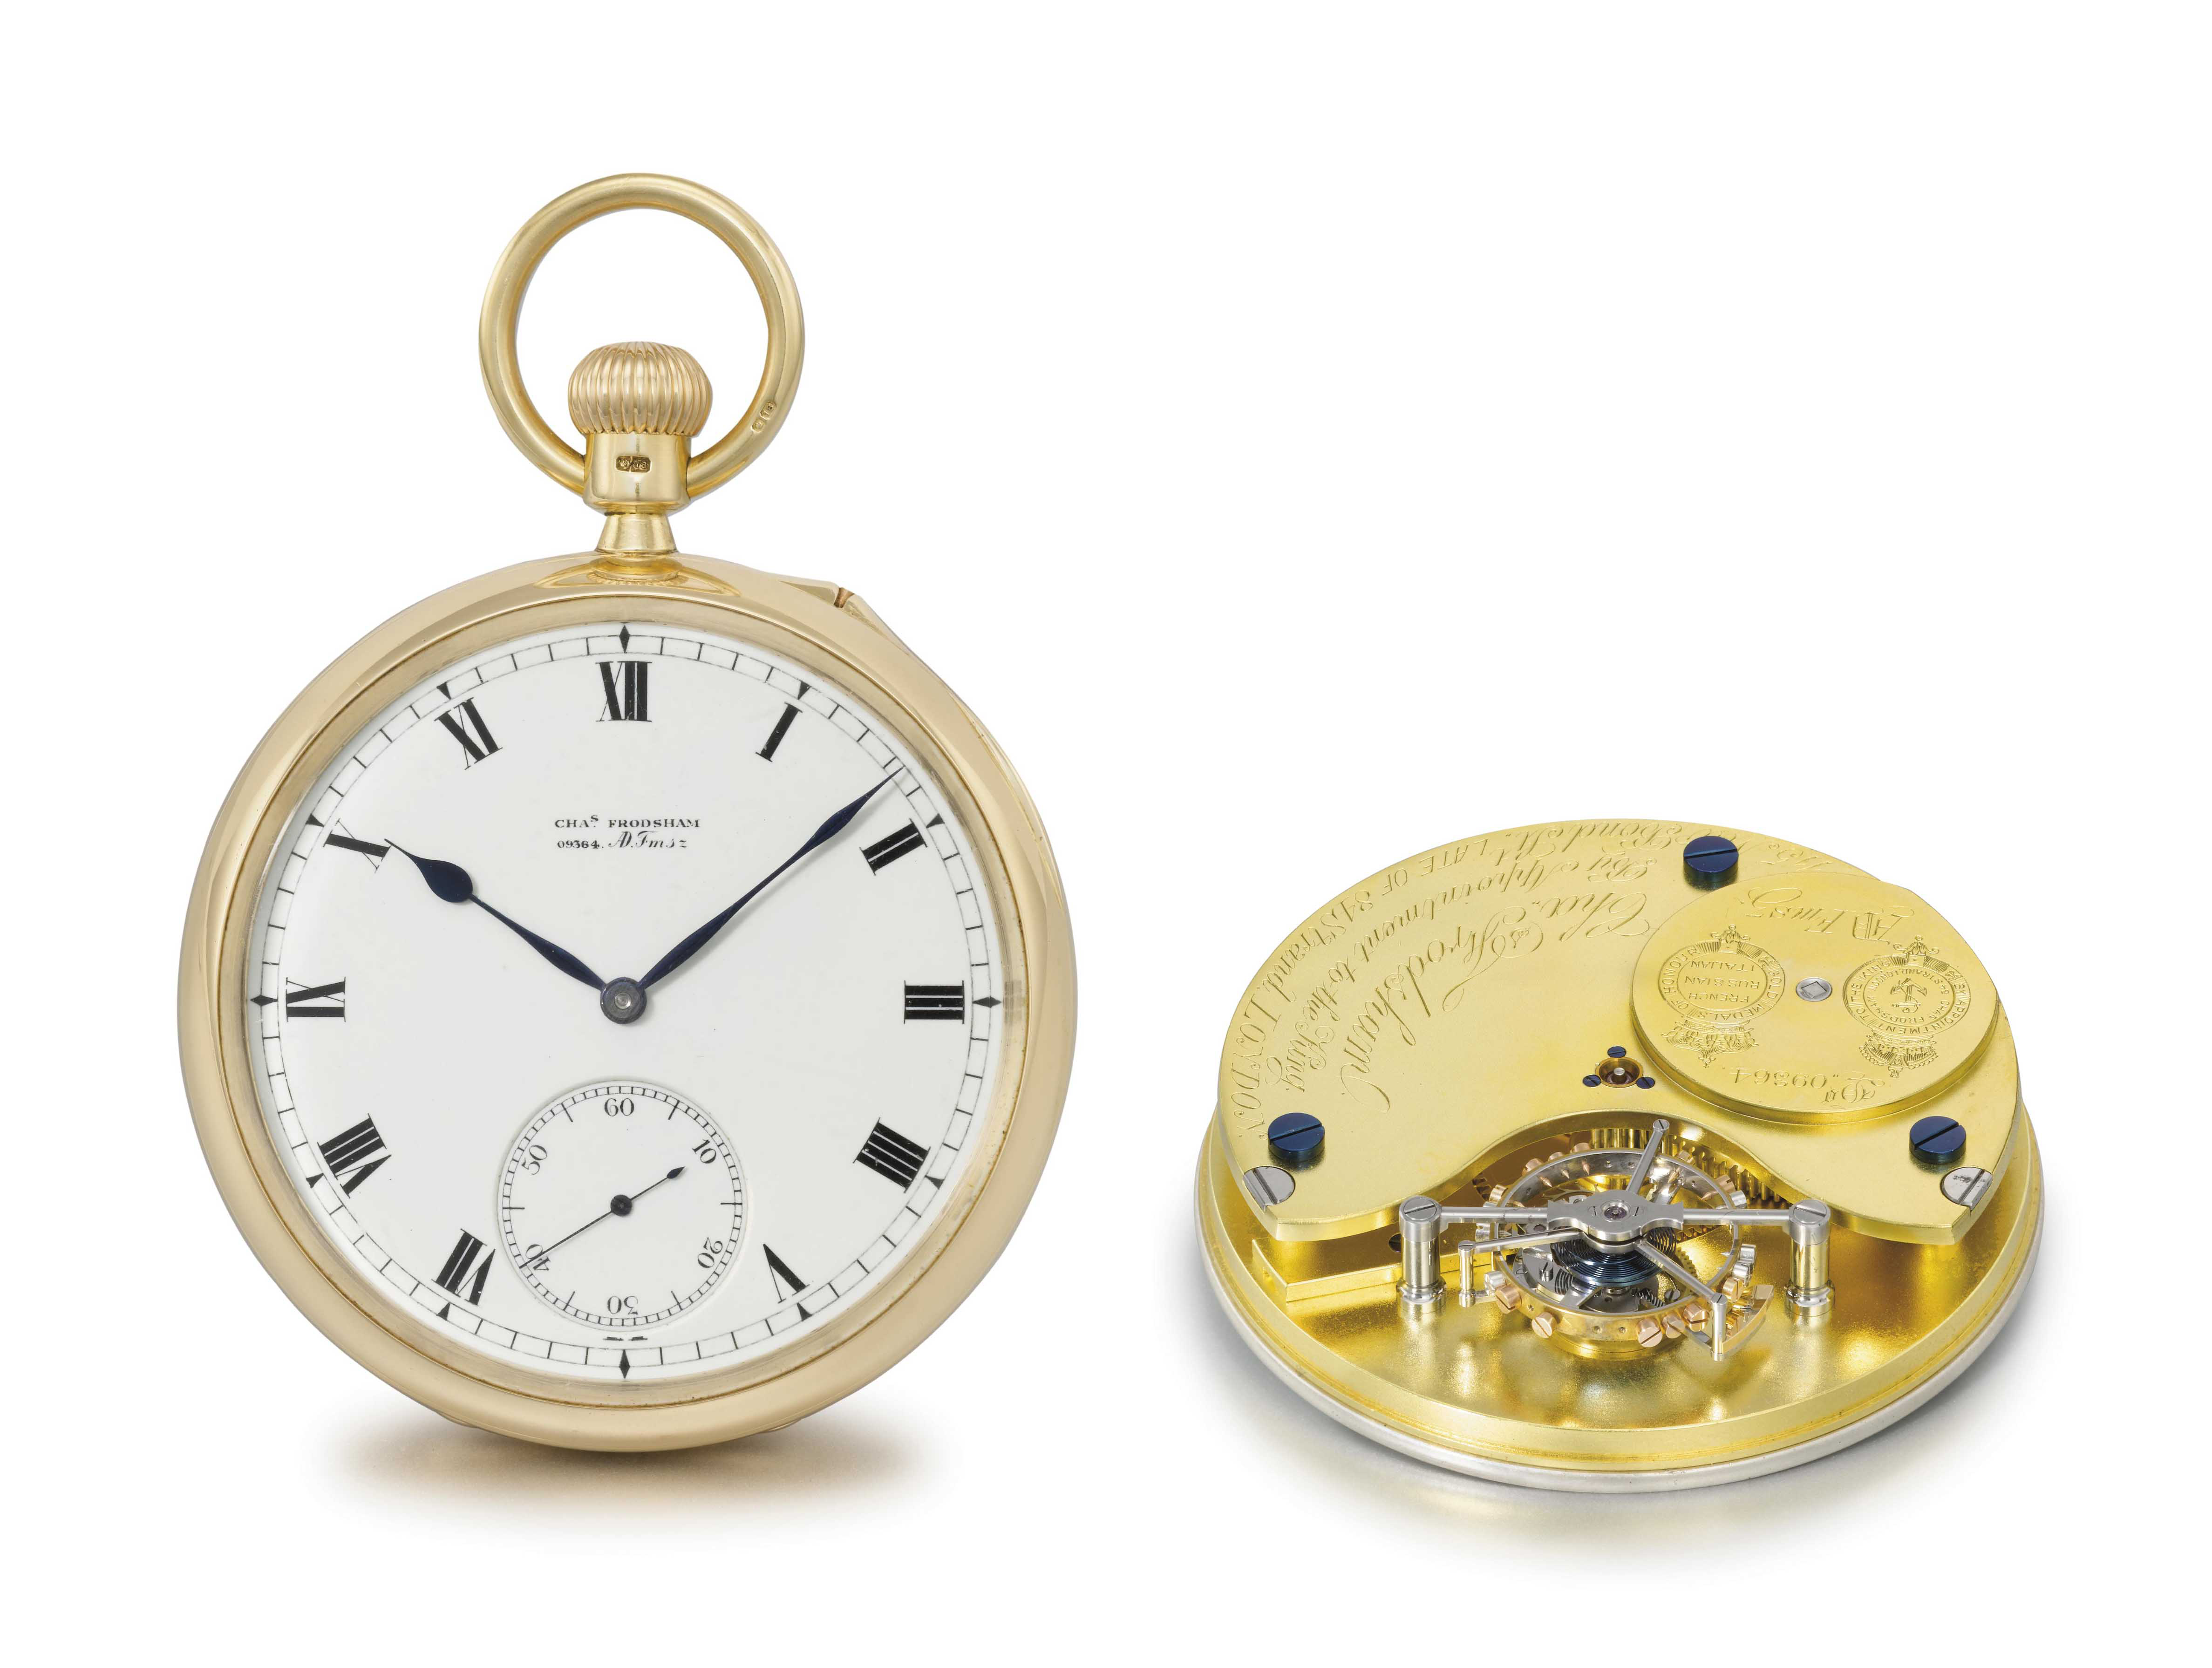 Charles Frodsham. A very fine, large and rare 18K gold openface one minute tourbillon keyless lever watch with Guillaume balance and Kew Observatory Certificate